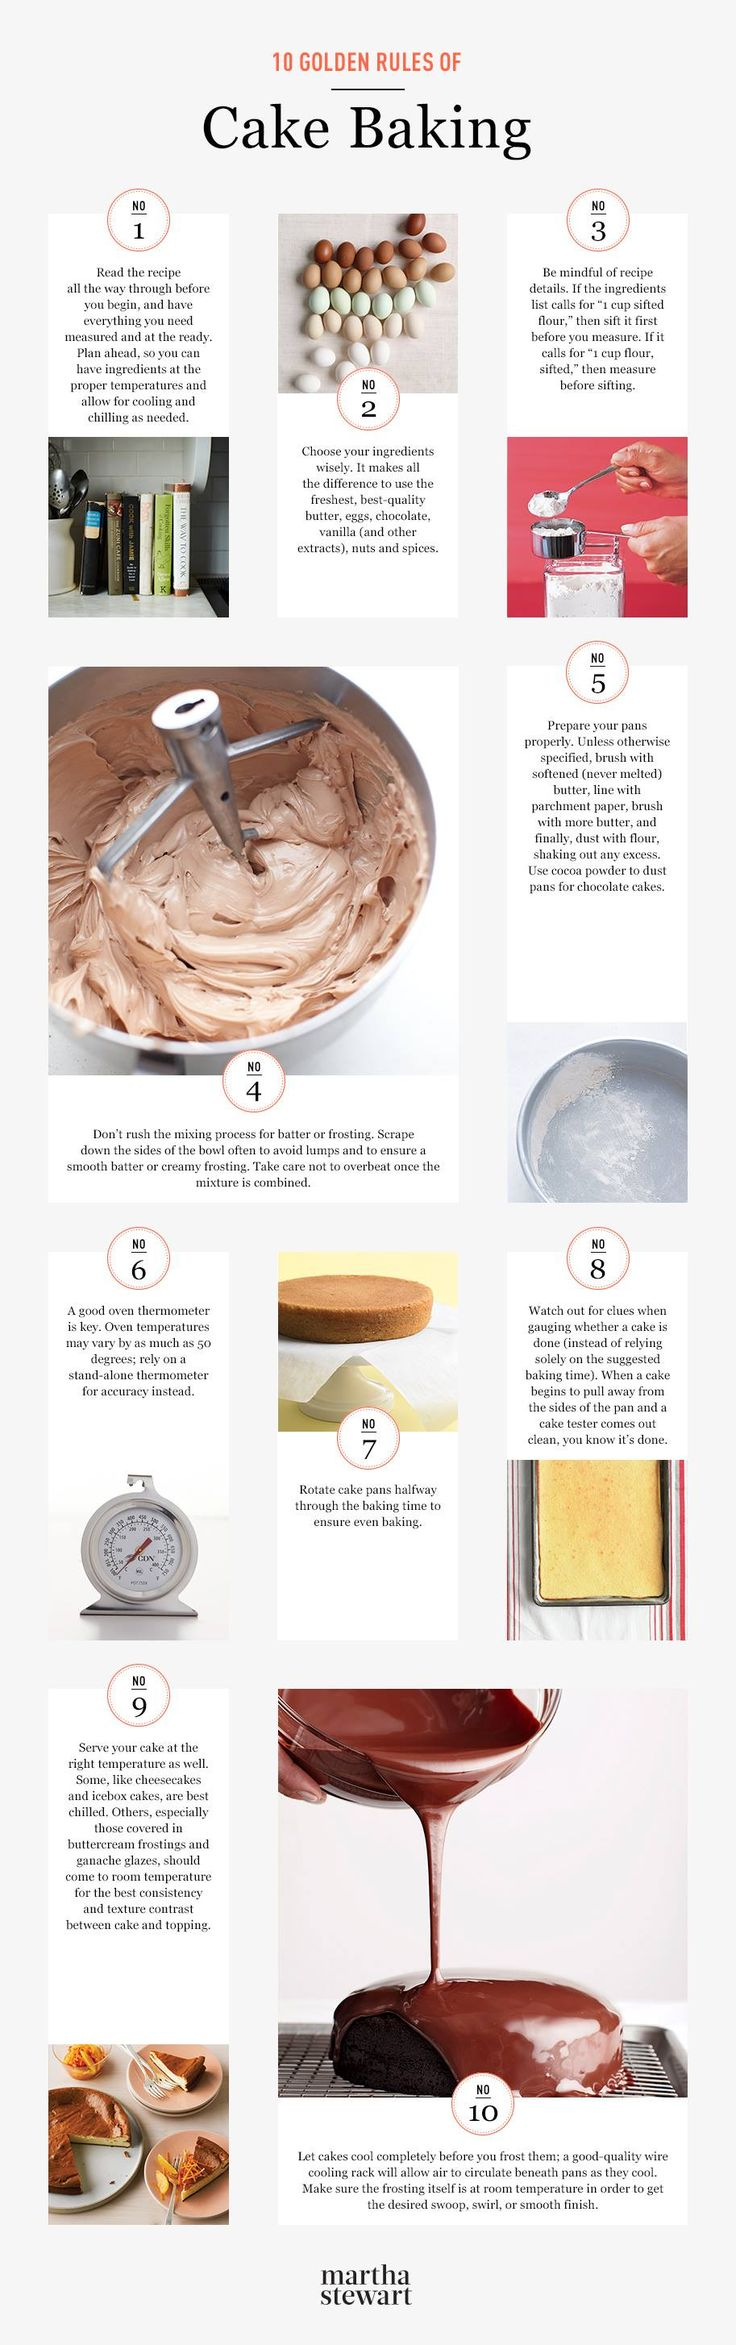 Martha Stewarts: 10 Golden Rules of Cake Baking